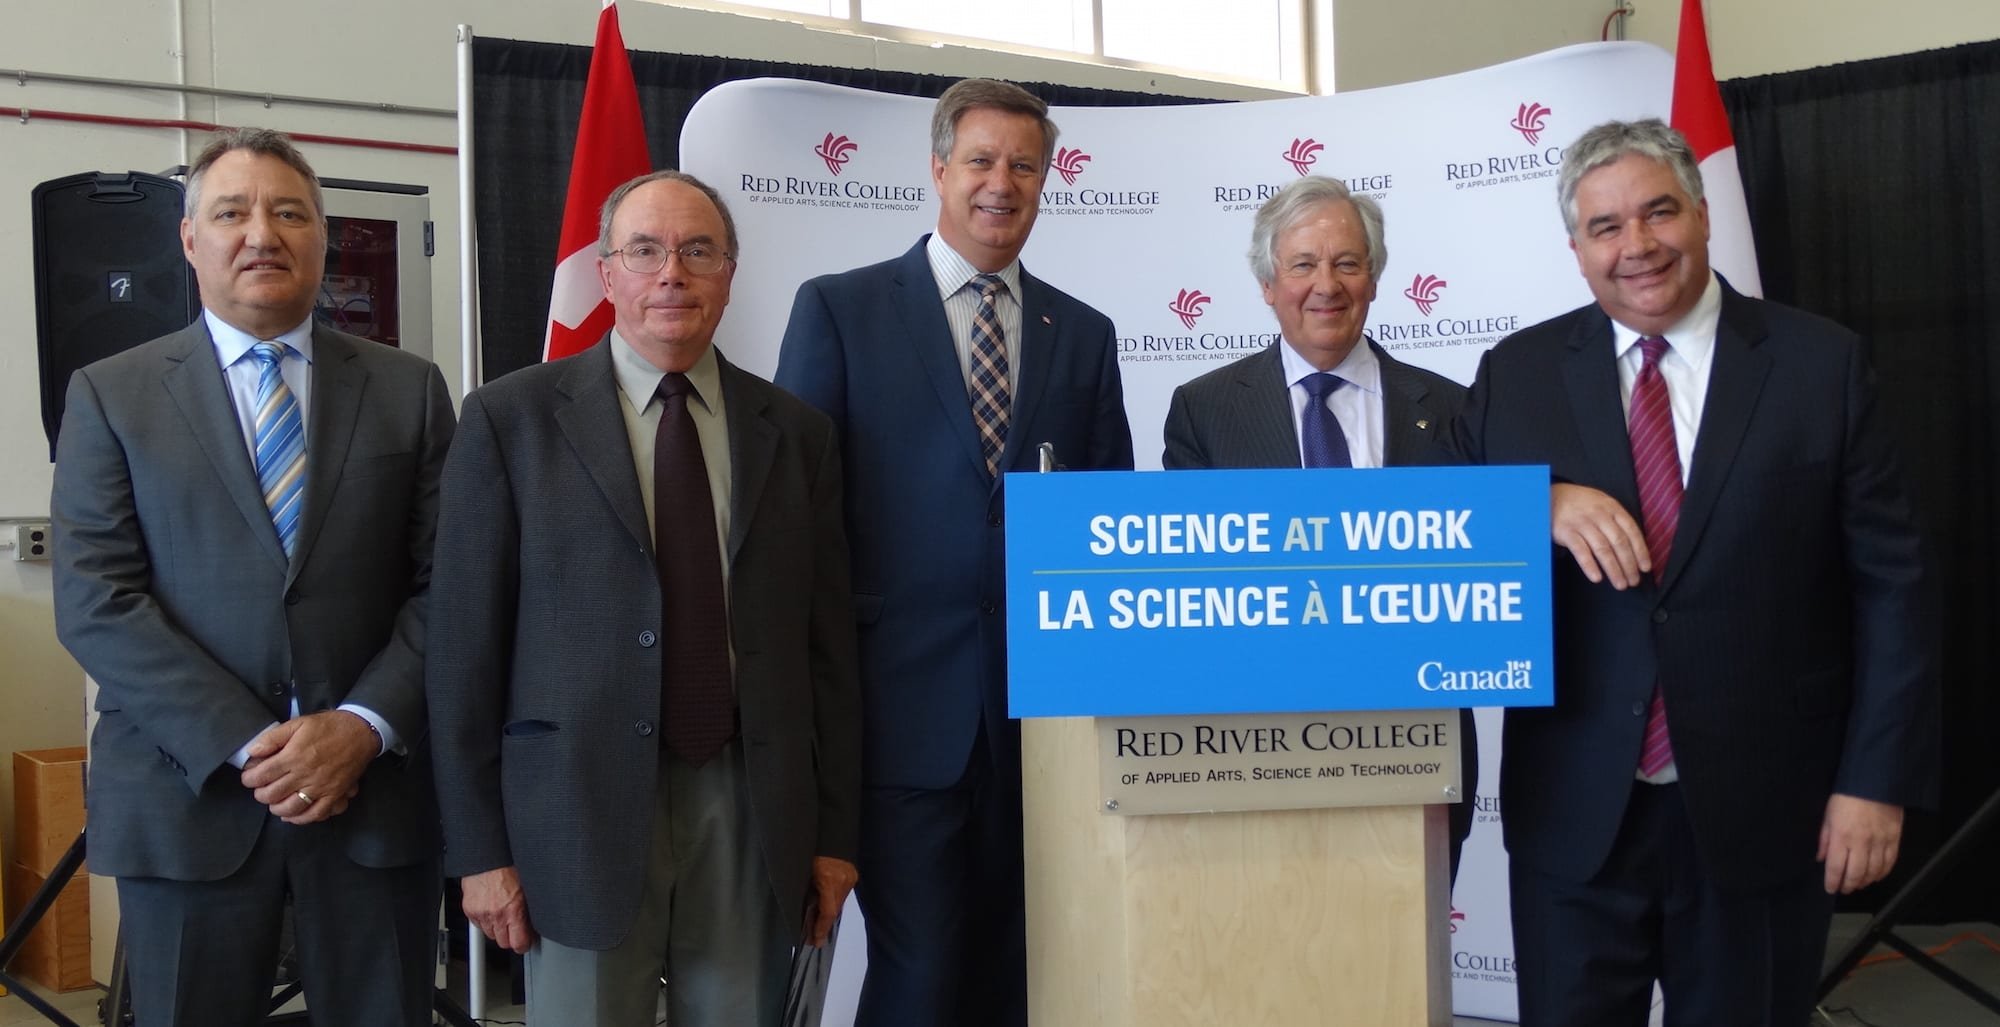 (L-R): Rick Marshall, Bird Construction; David Stones, CBEP Advisory Board Chair; Lawrence Toet, MP for Elmwood-Transona; David Rew, interim President of Red River College; Hon. Peter Van Loan, Leader of the Government in the House of Commons.